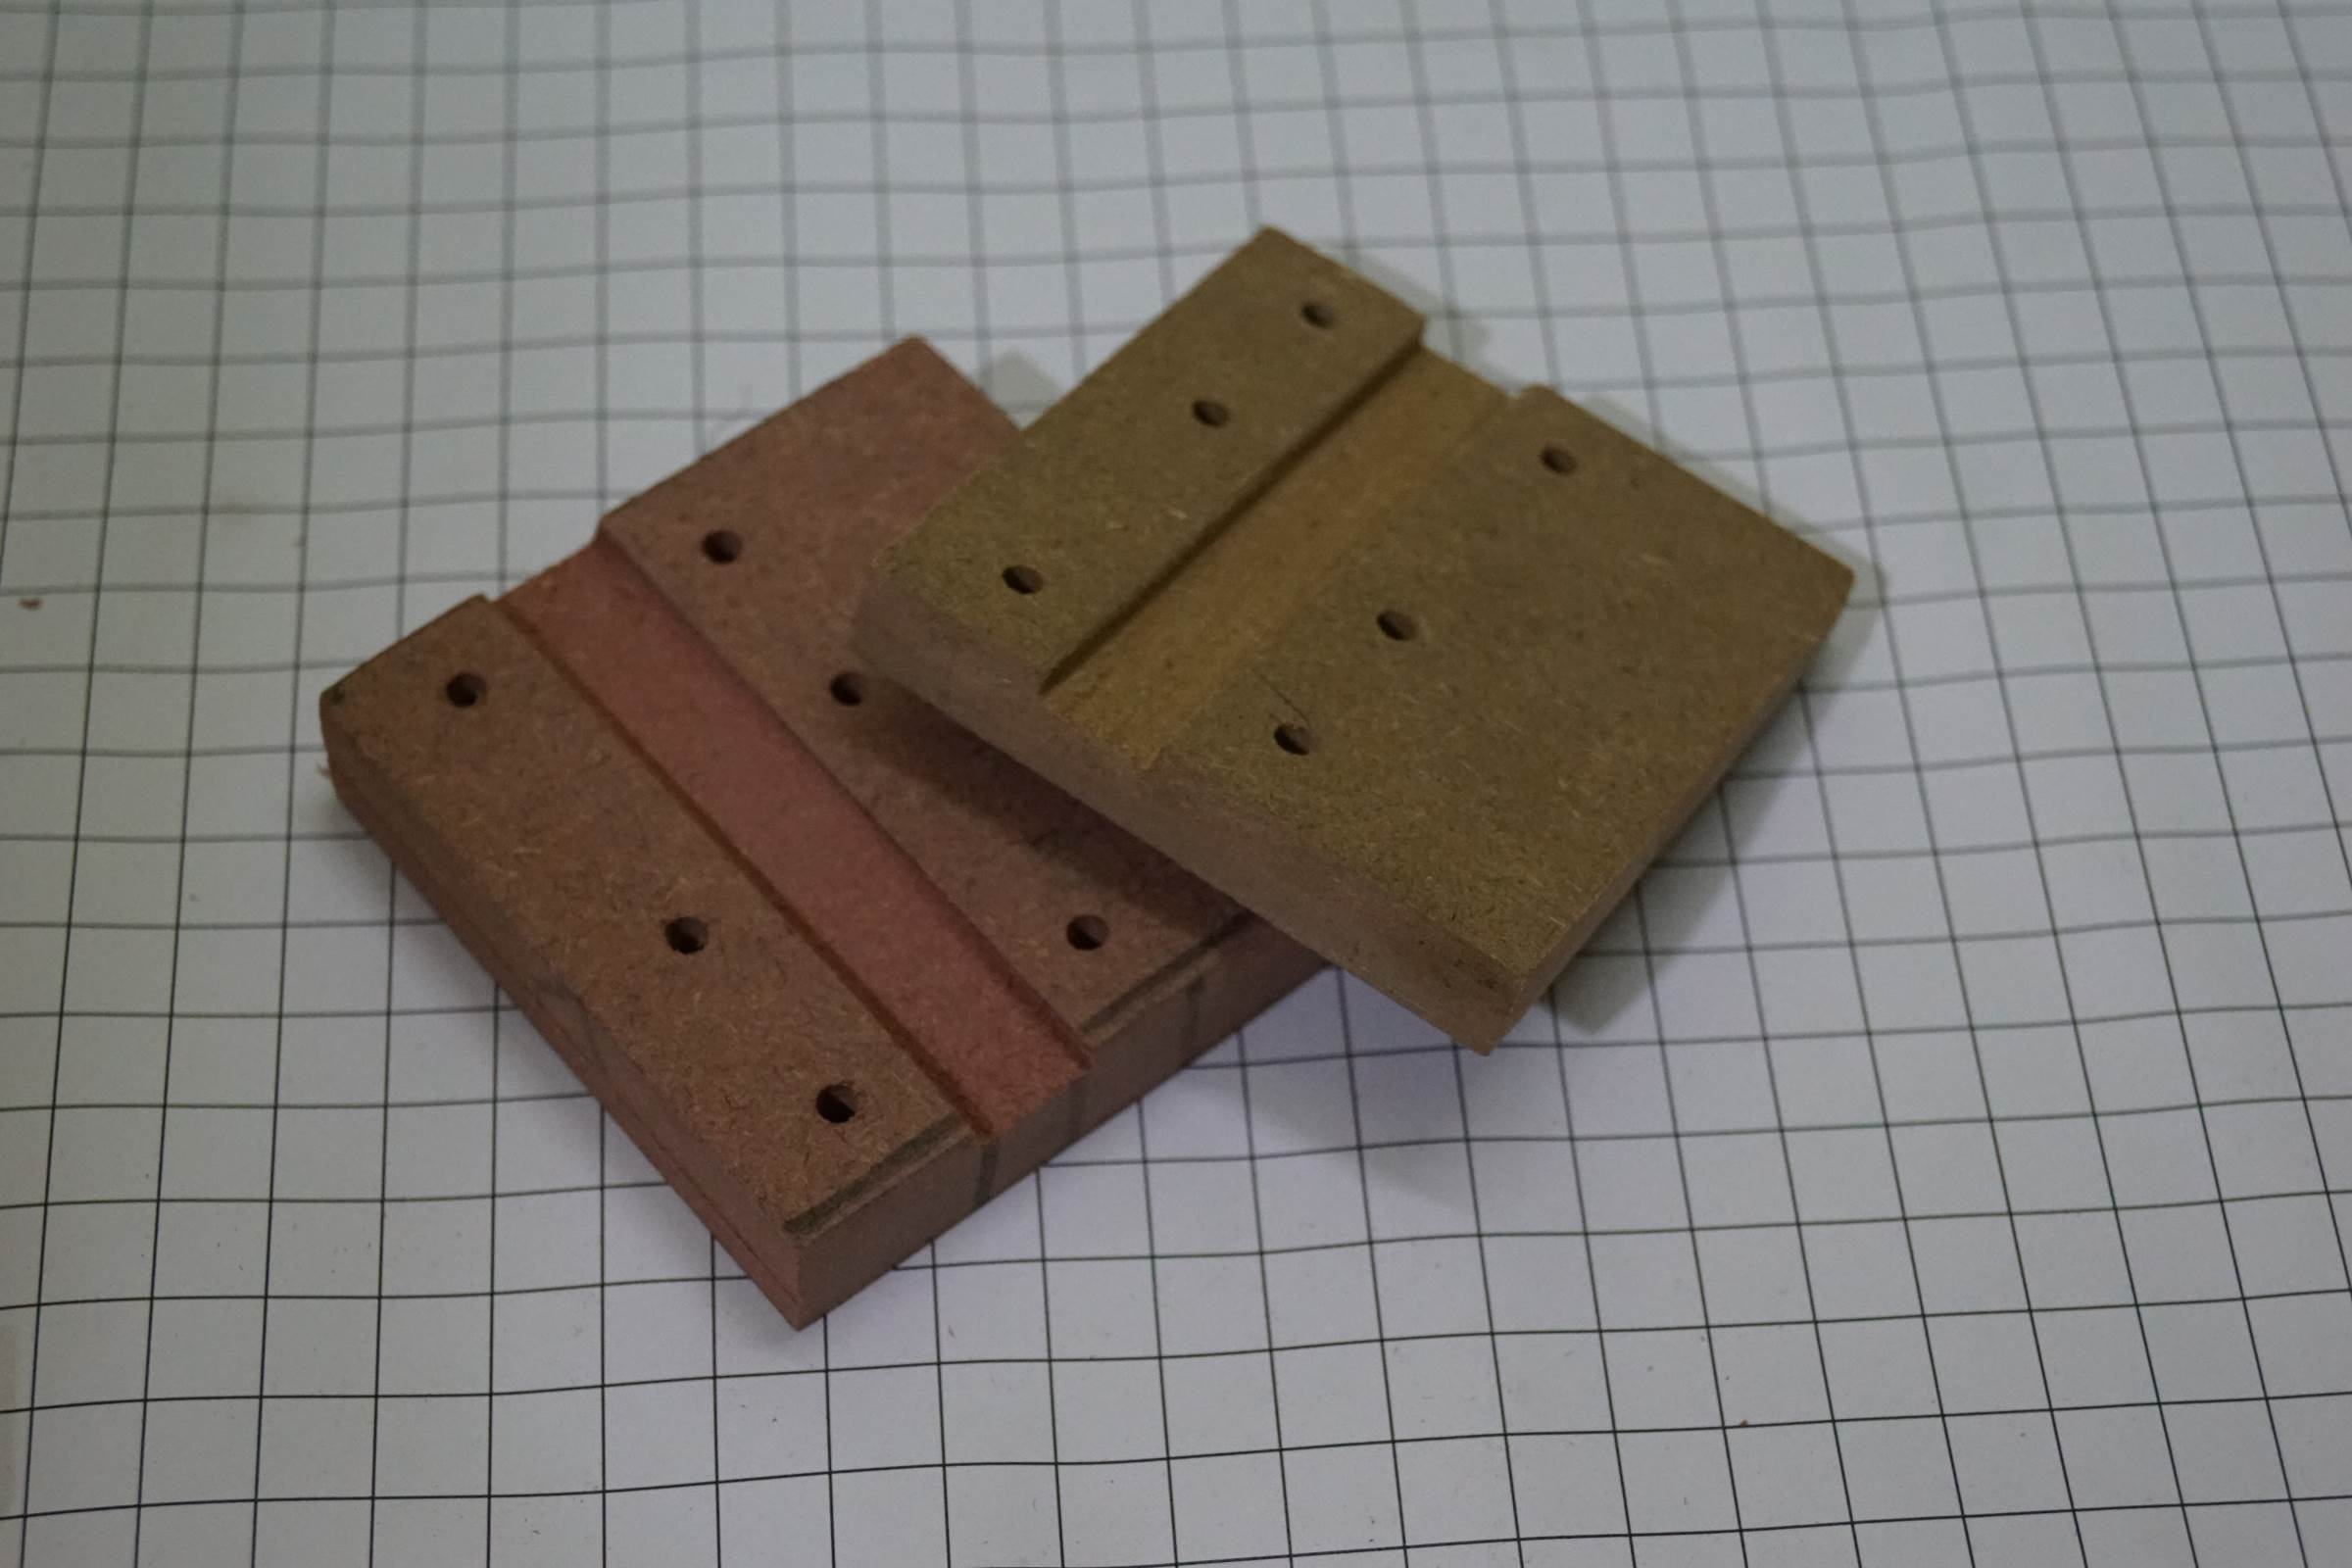 X-Axis End Plates with a depression to support the LM10UU Linear Bearing of Y-Axis